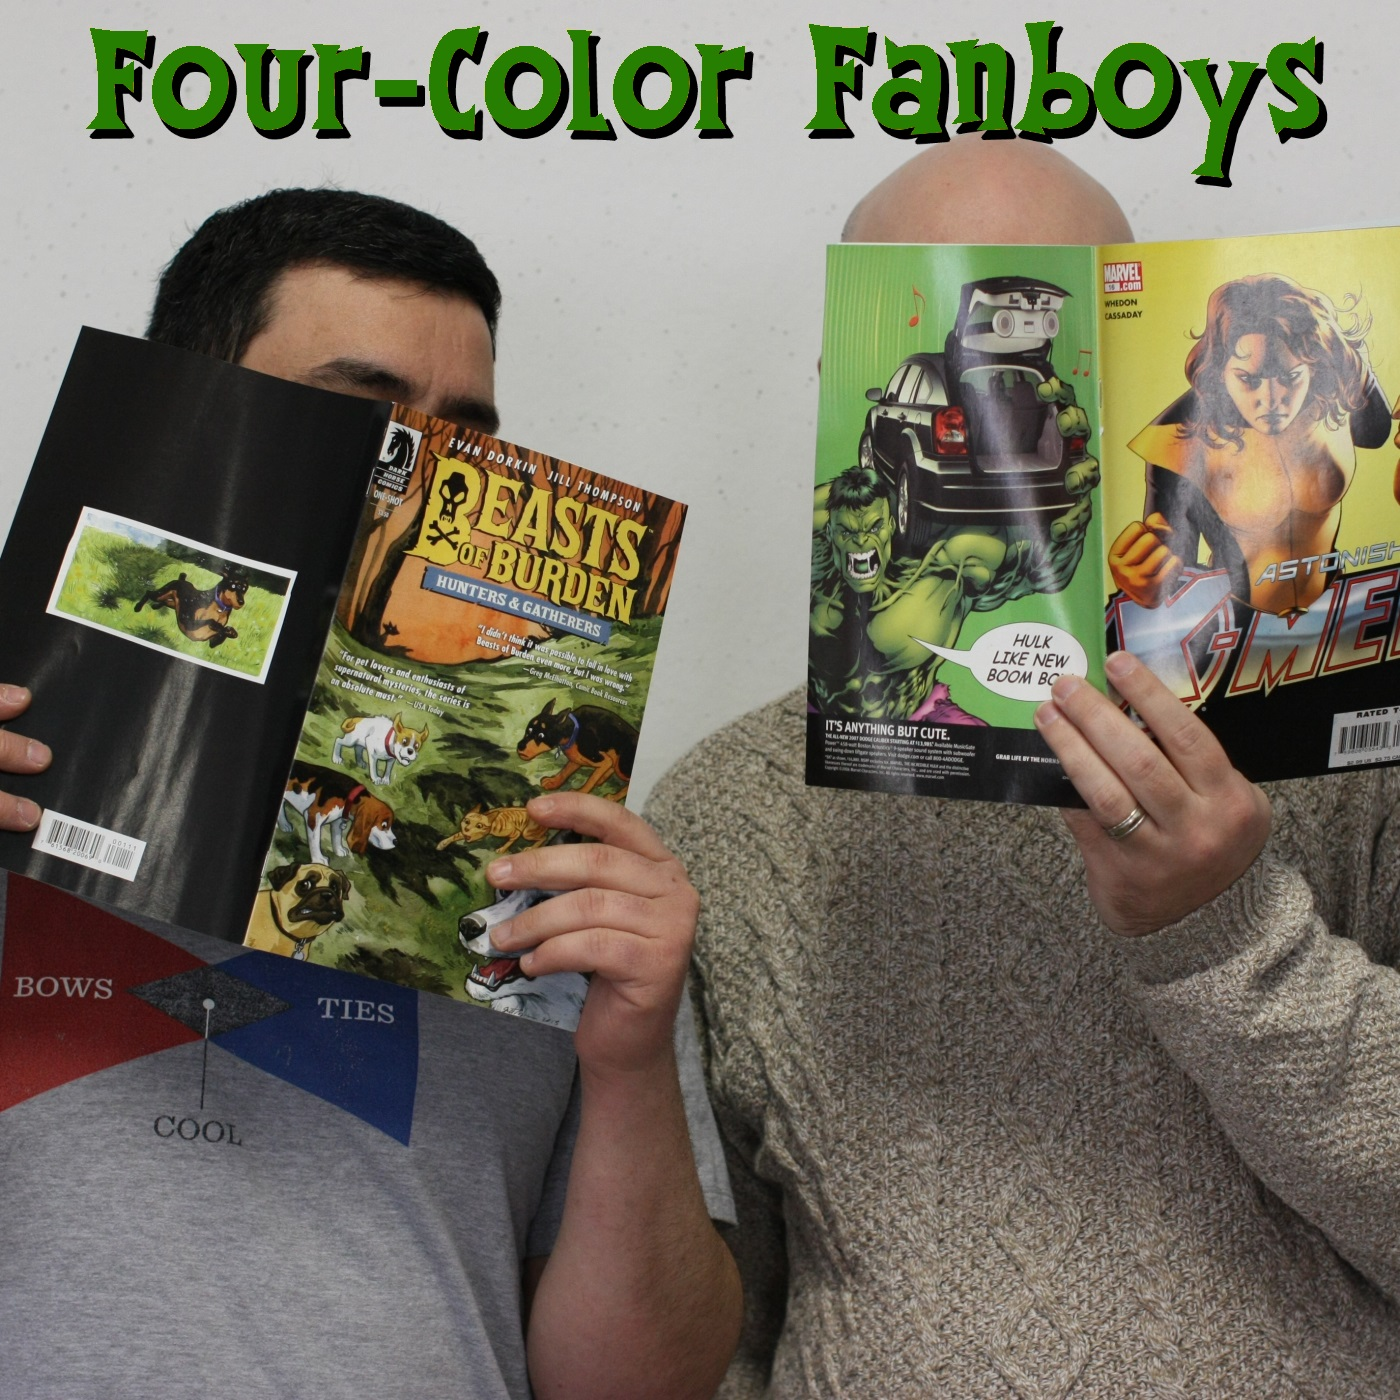 Four-Color Fanboys